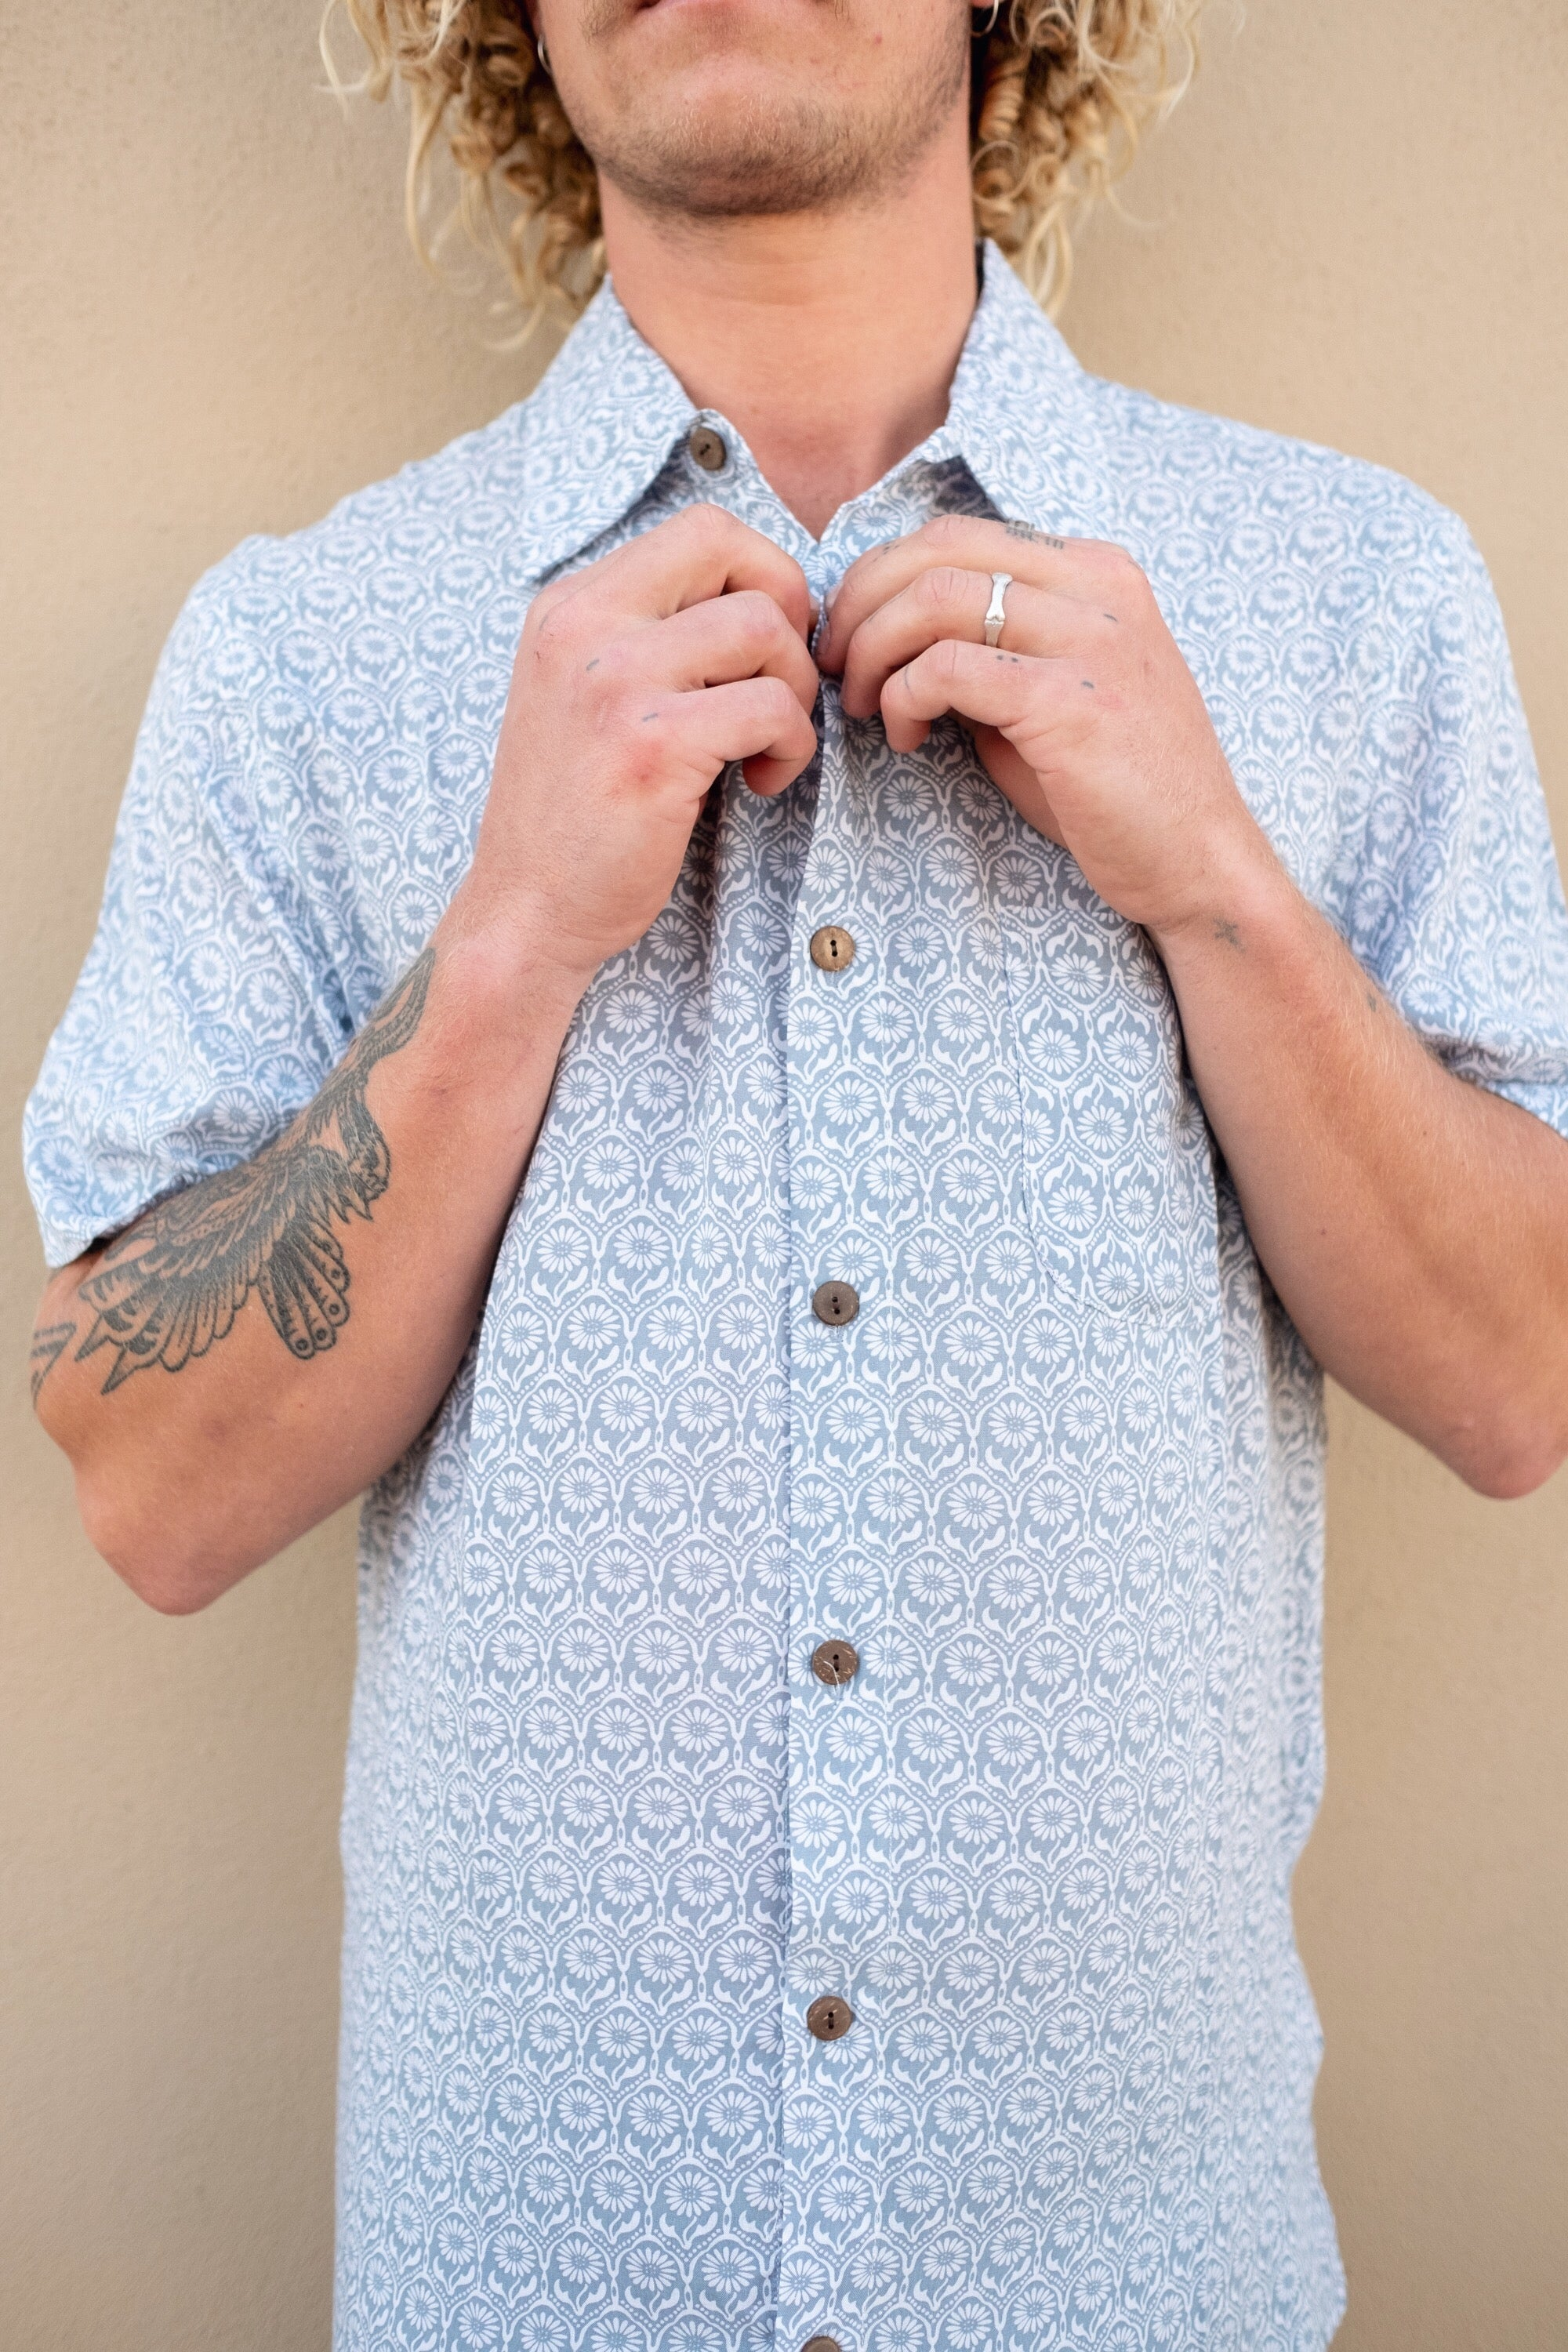 TYGER BUTTON UP - OLAS SUPPLY CO.